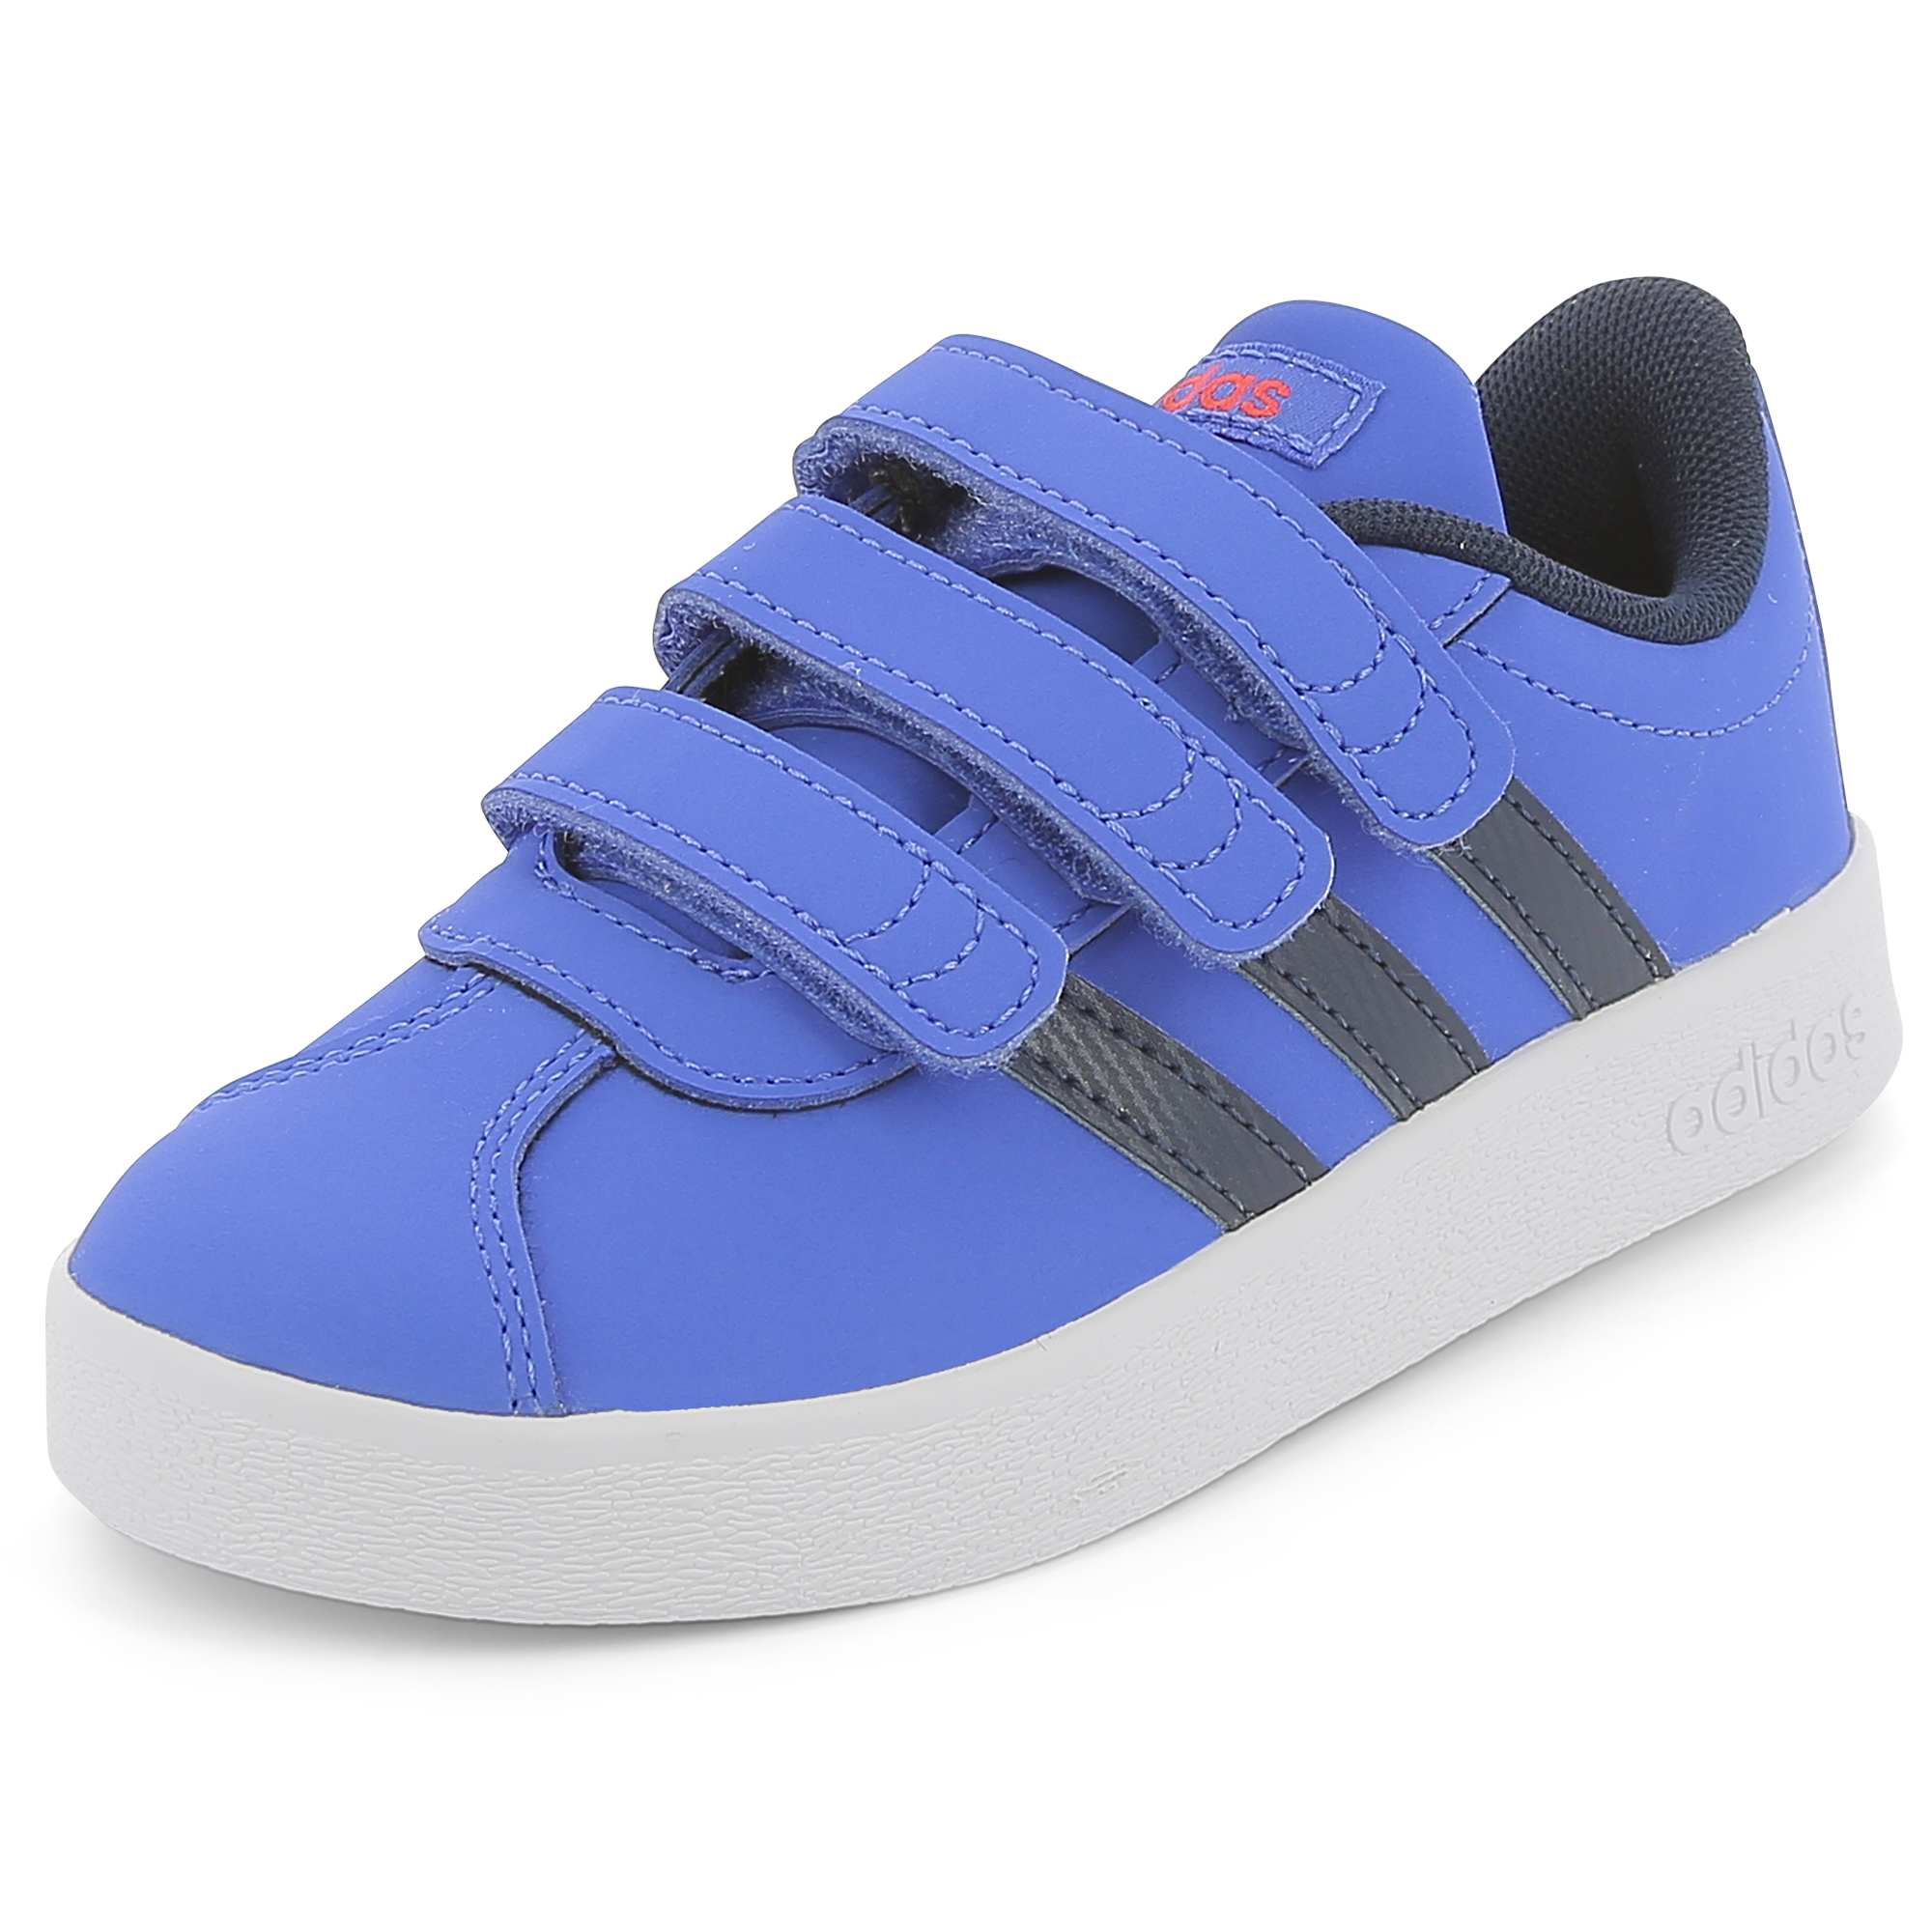 Adidas - Court Vl Cmf 2.0 C - Enfants - Taille 34 HP8tYr